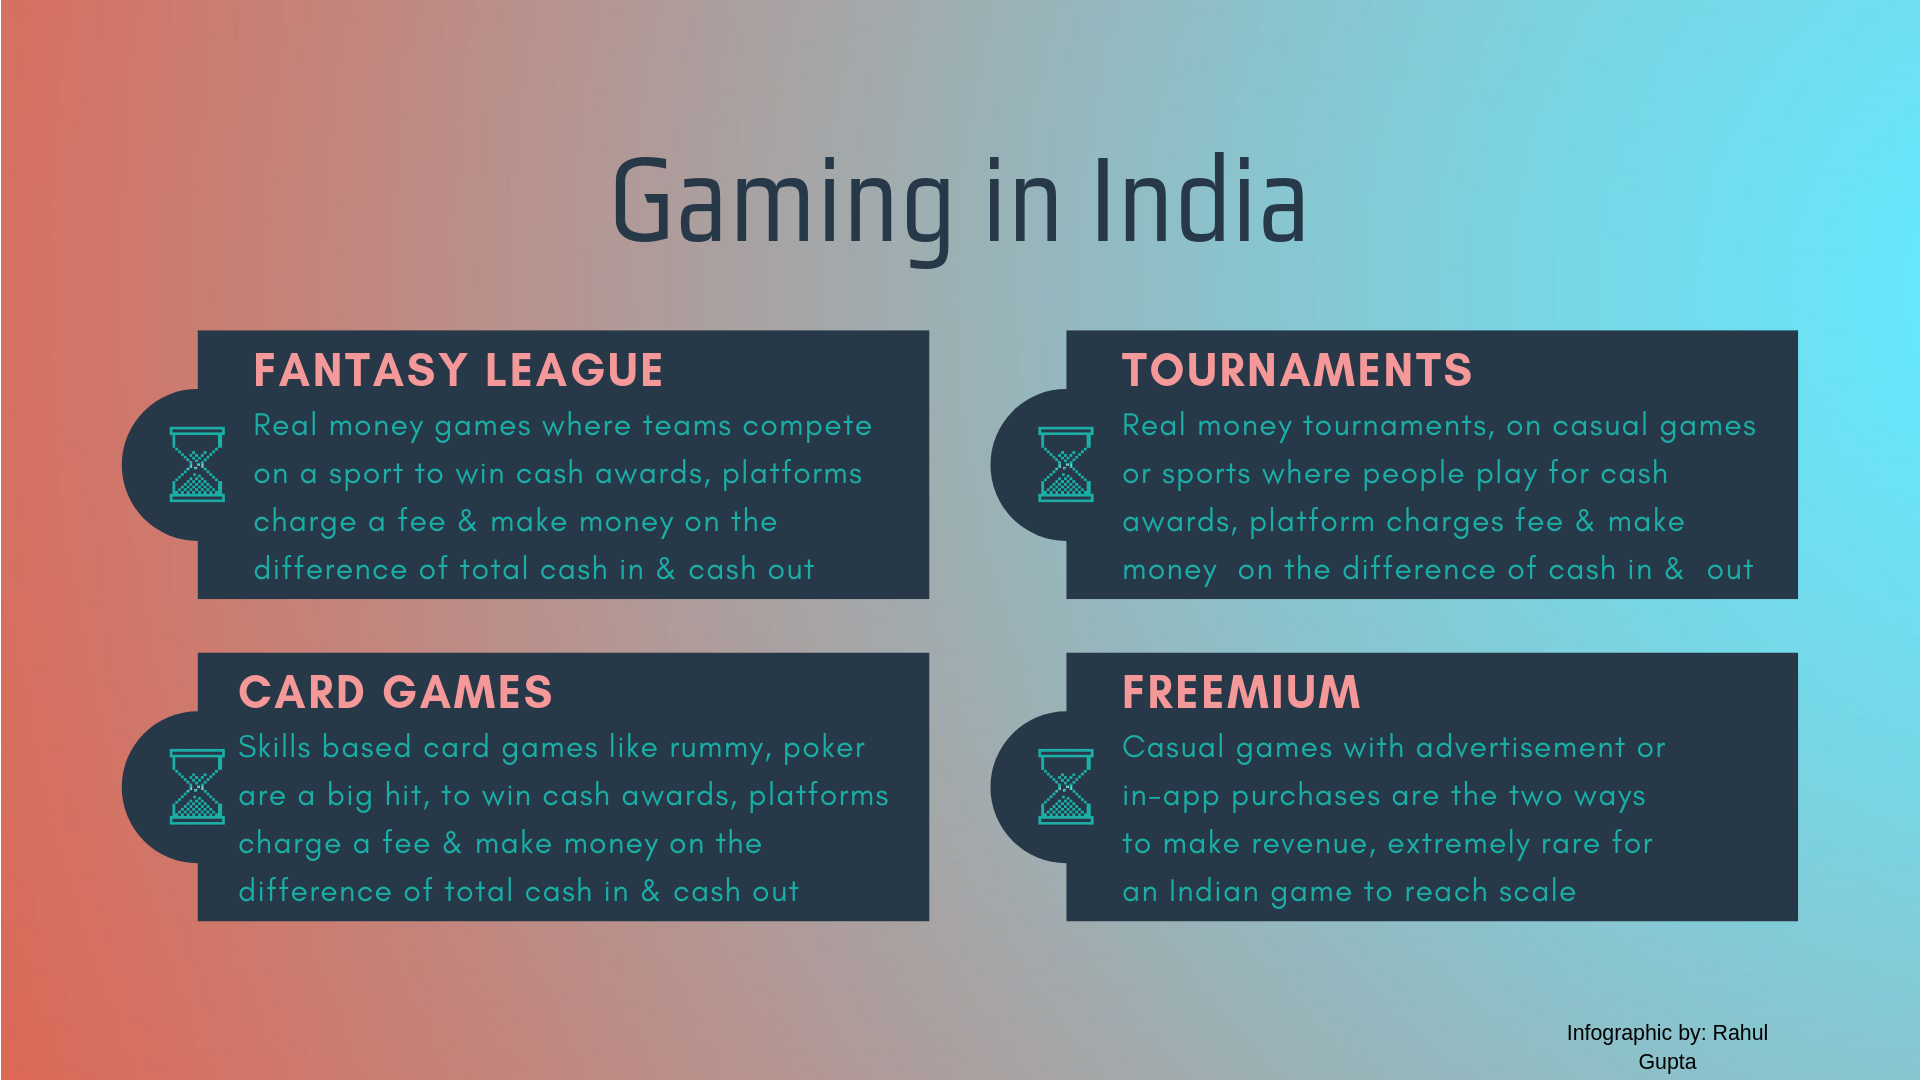 Gaming in India, the industry that flipped! - Knowledge Capital - Medium